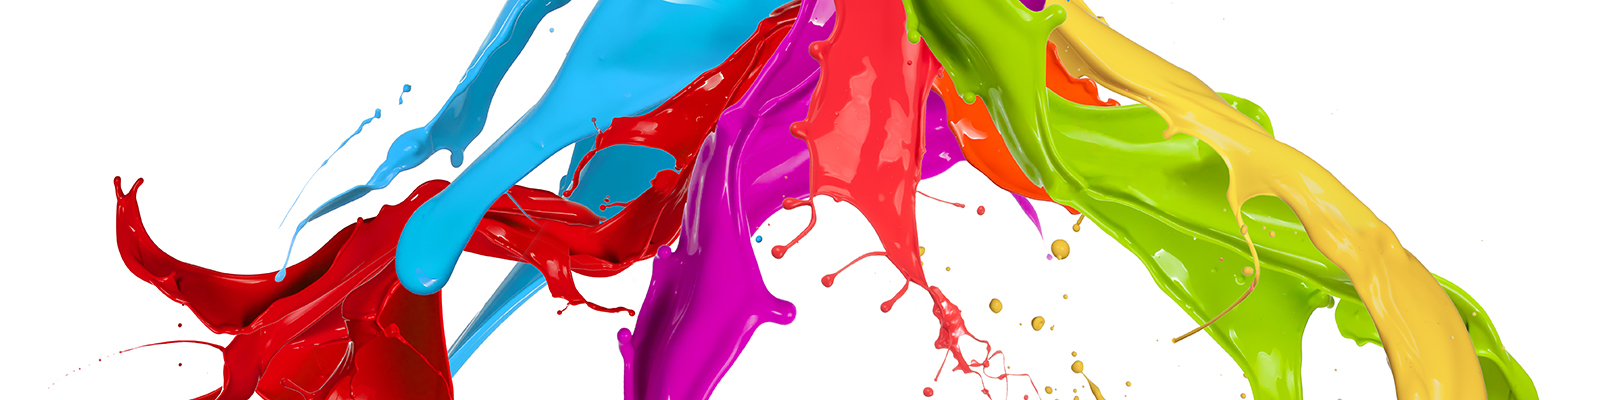 Experts in Colour Pigments, Dispersions and Resins